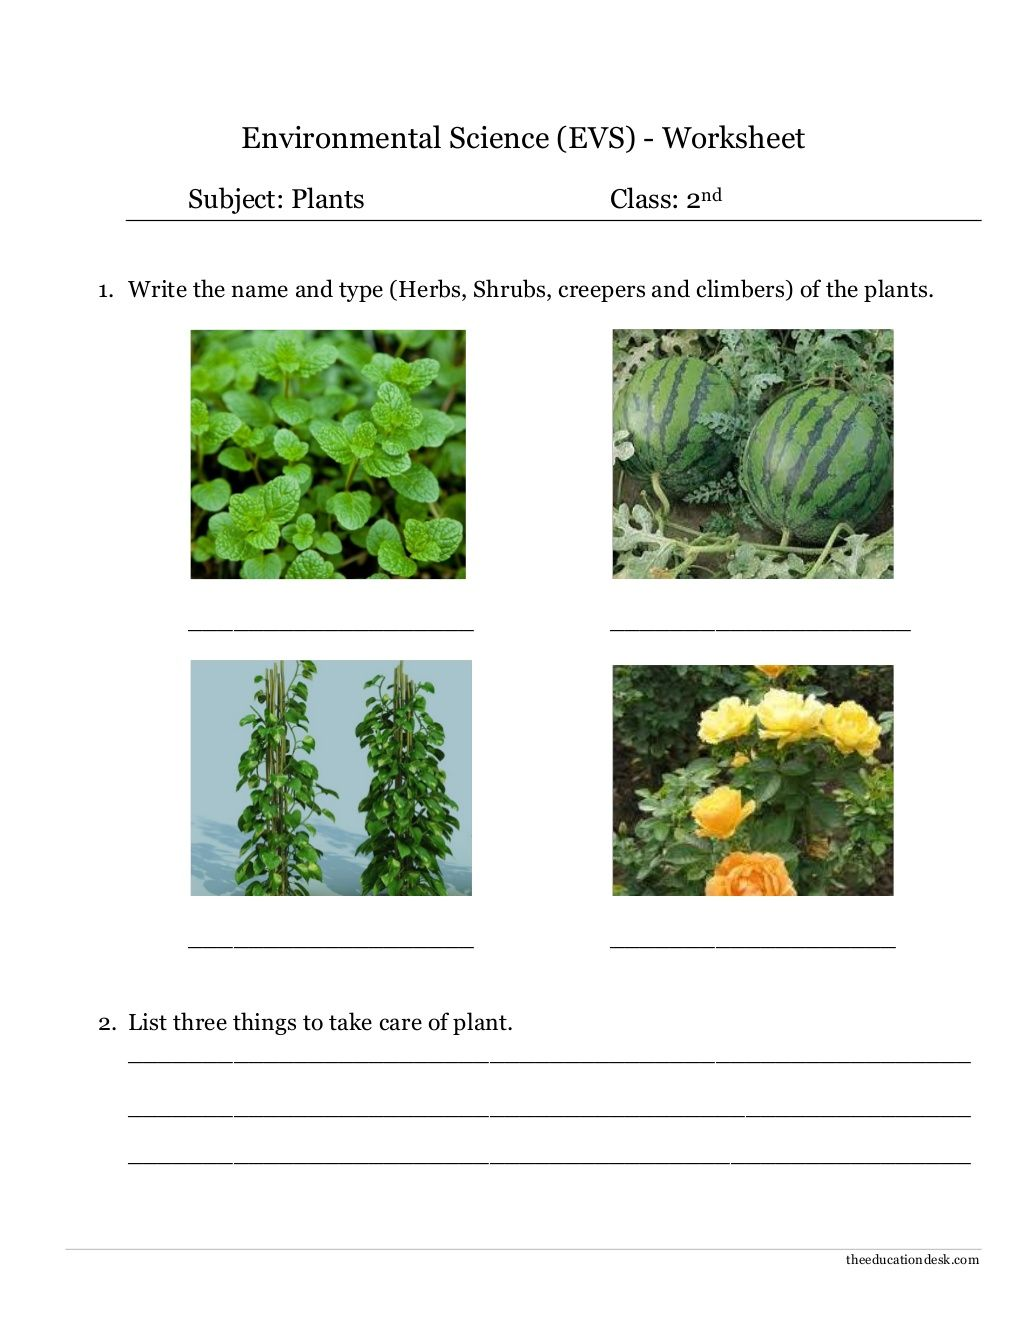 Environmental Science (EVS) : Plants Worksheet (Class II) by ...